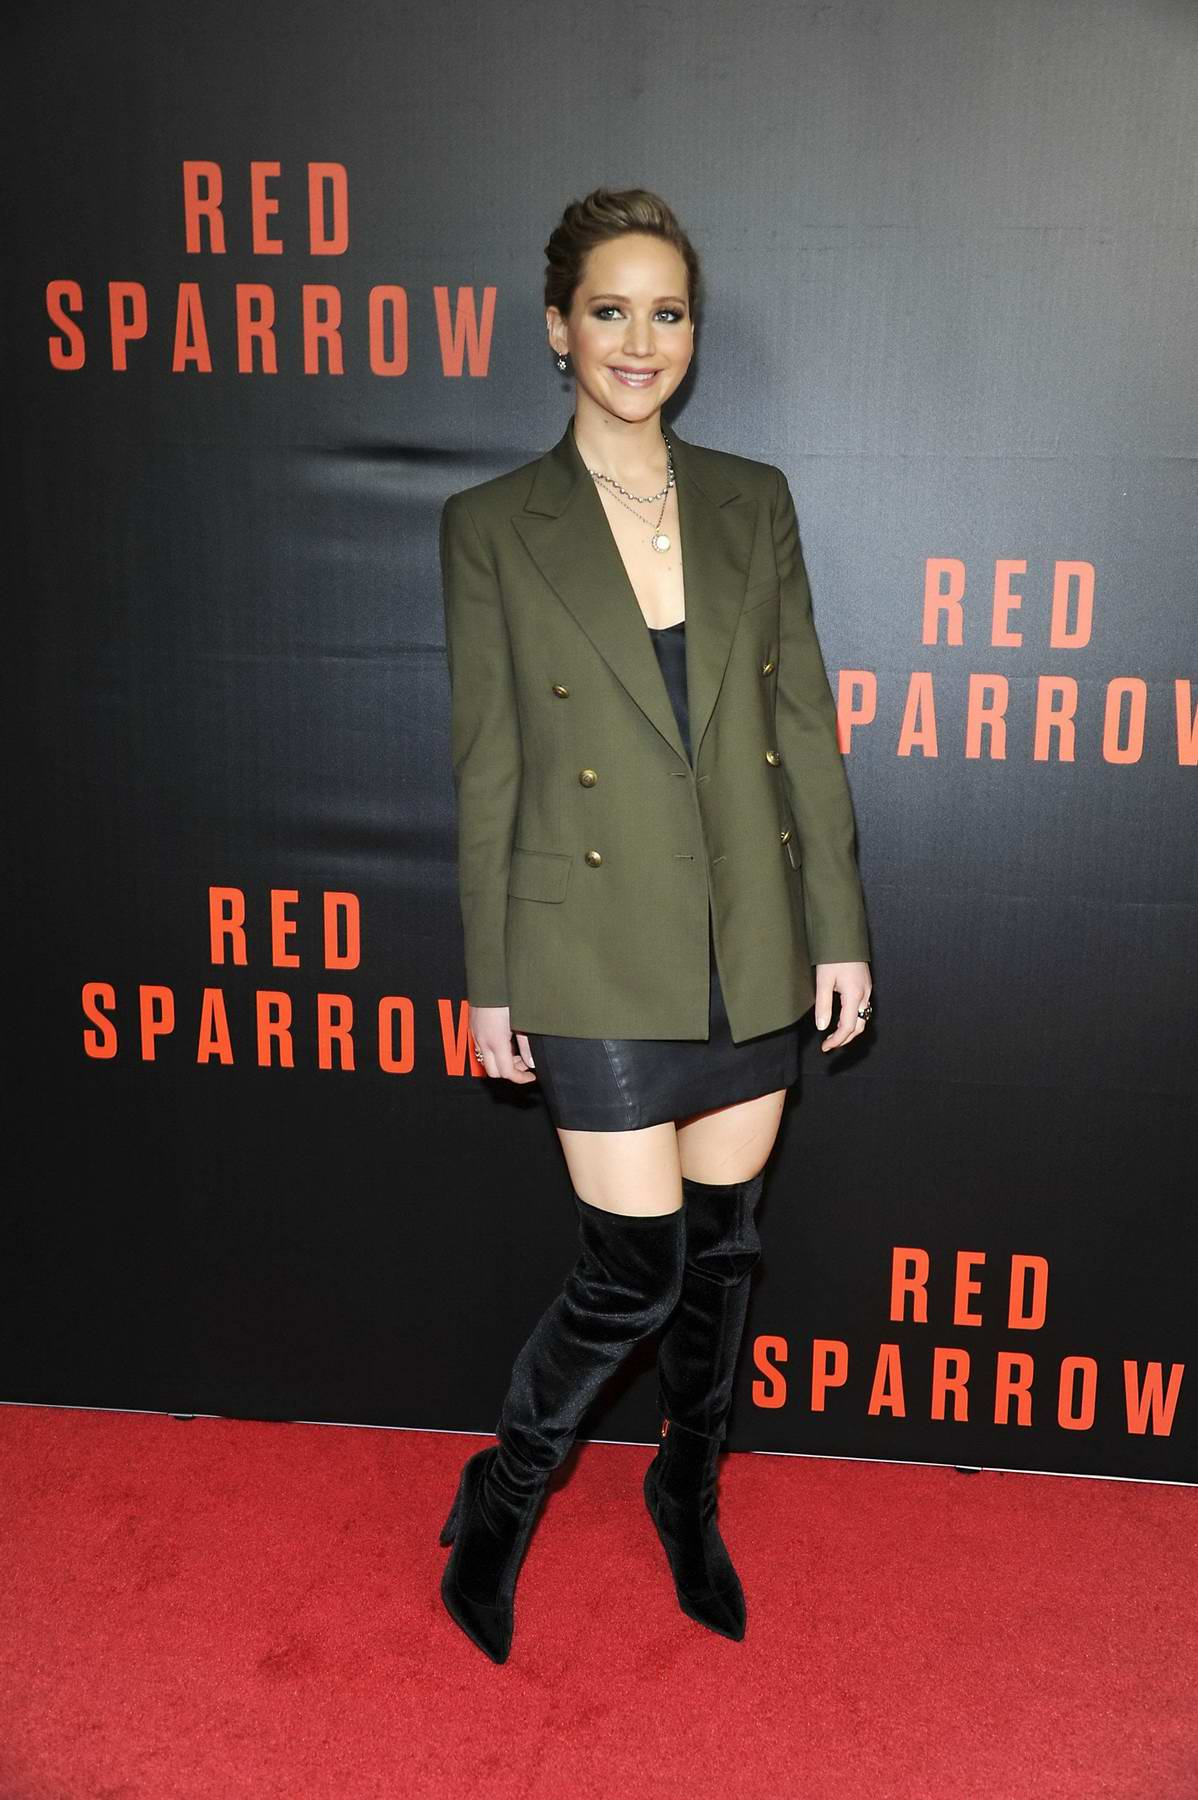 Jennifer Lawrence attends 'Red Sparrow' screening at Newseum in Washington D.C.